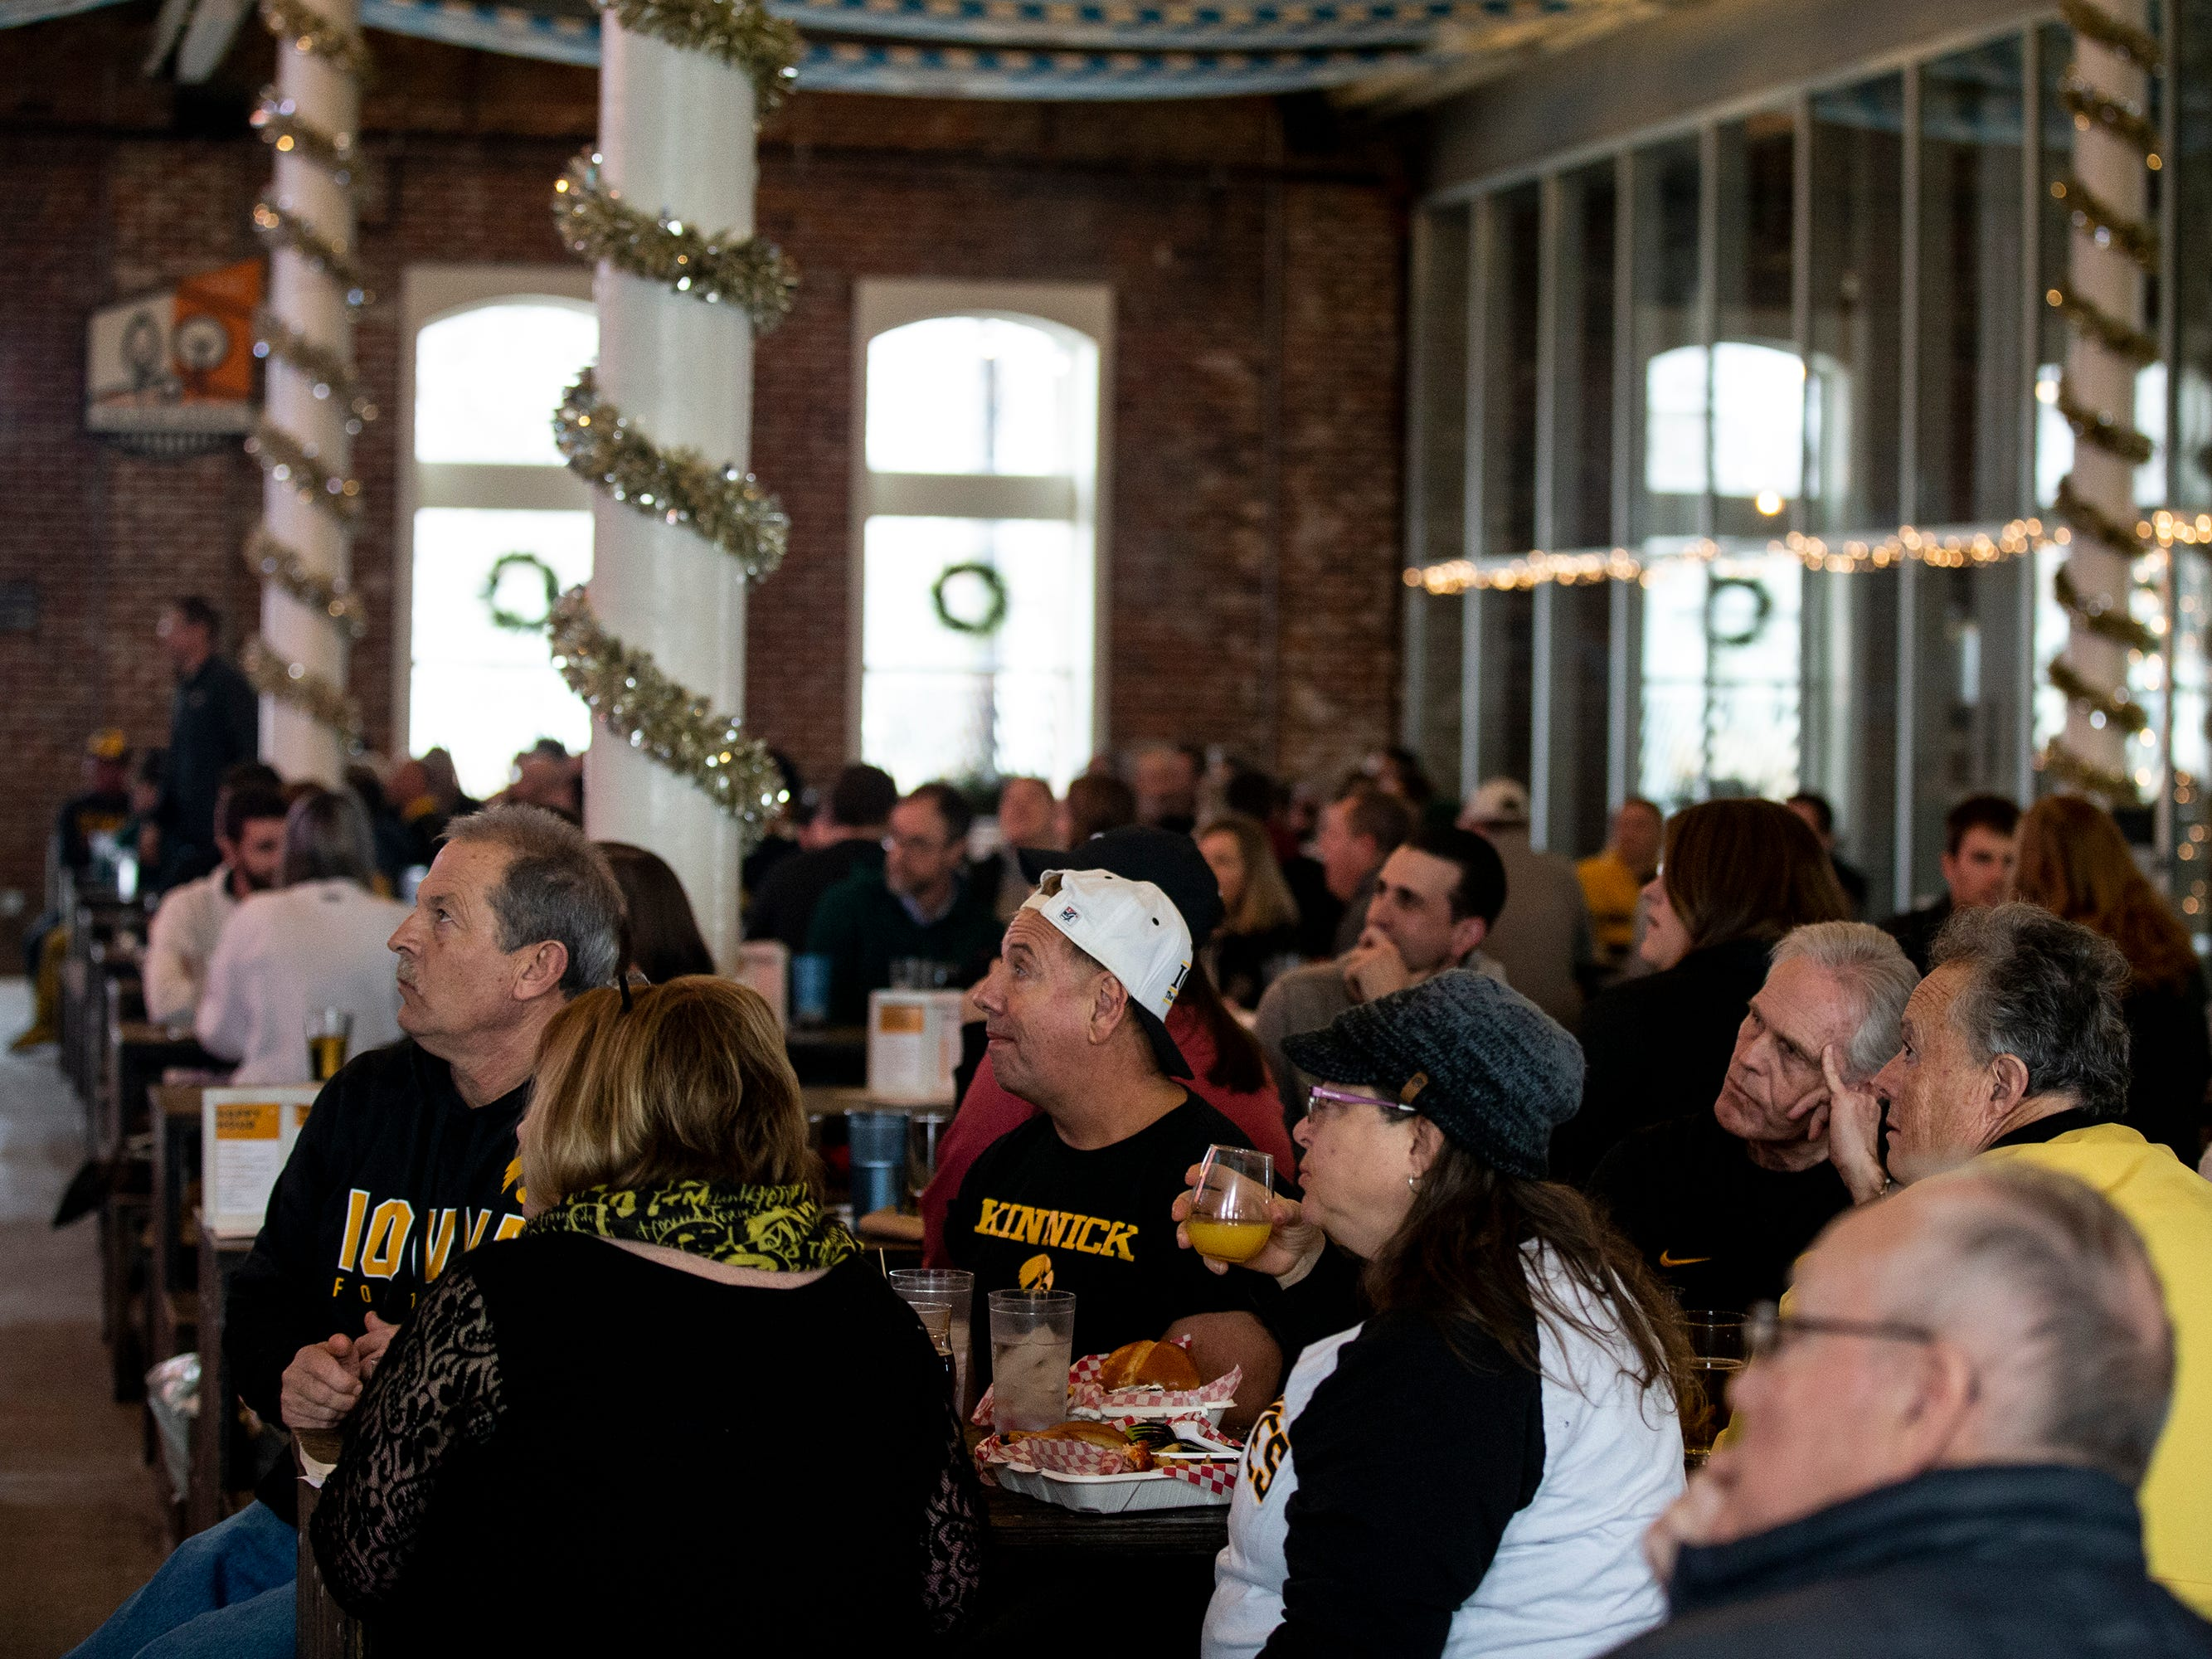 Hawkeye fans watch the University of Iowa football team play in the Outback Bowl on Tuesday, Jan. 1, 2019, at The Hall in West Des Moines.